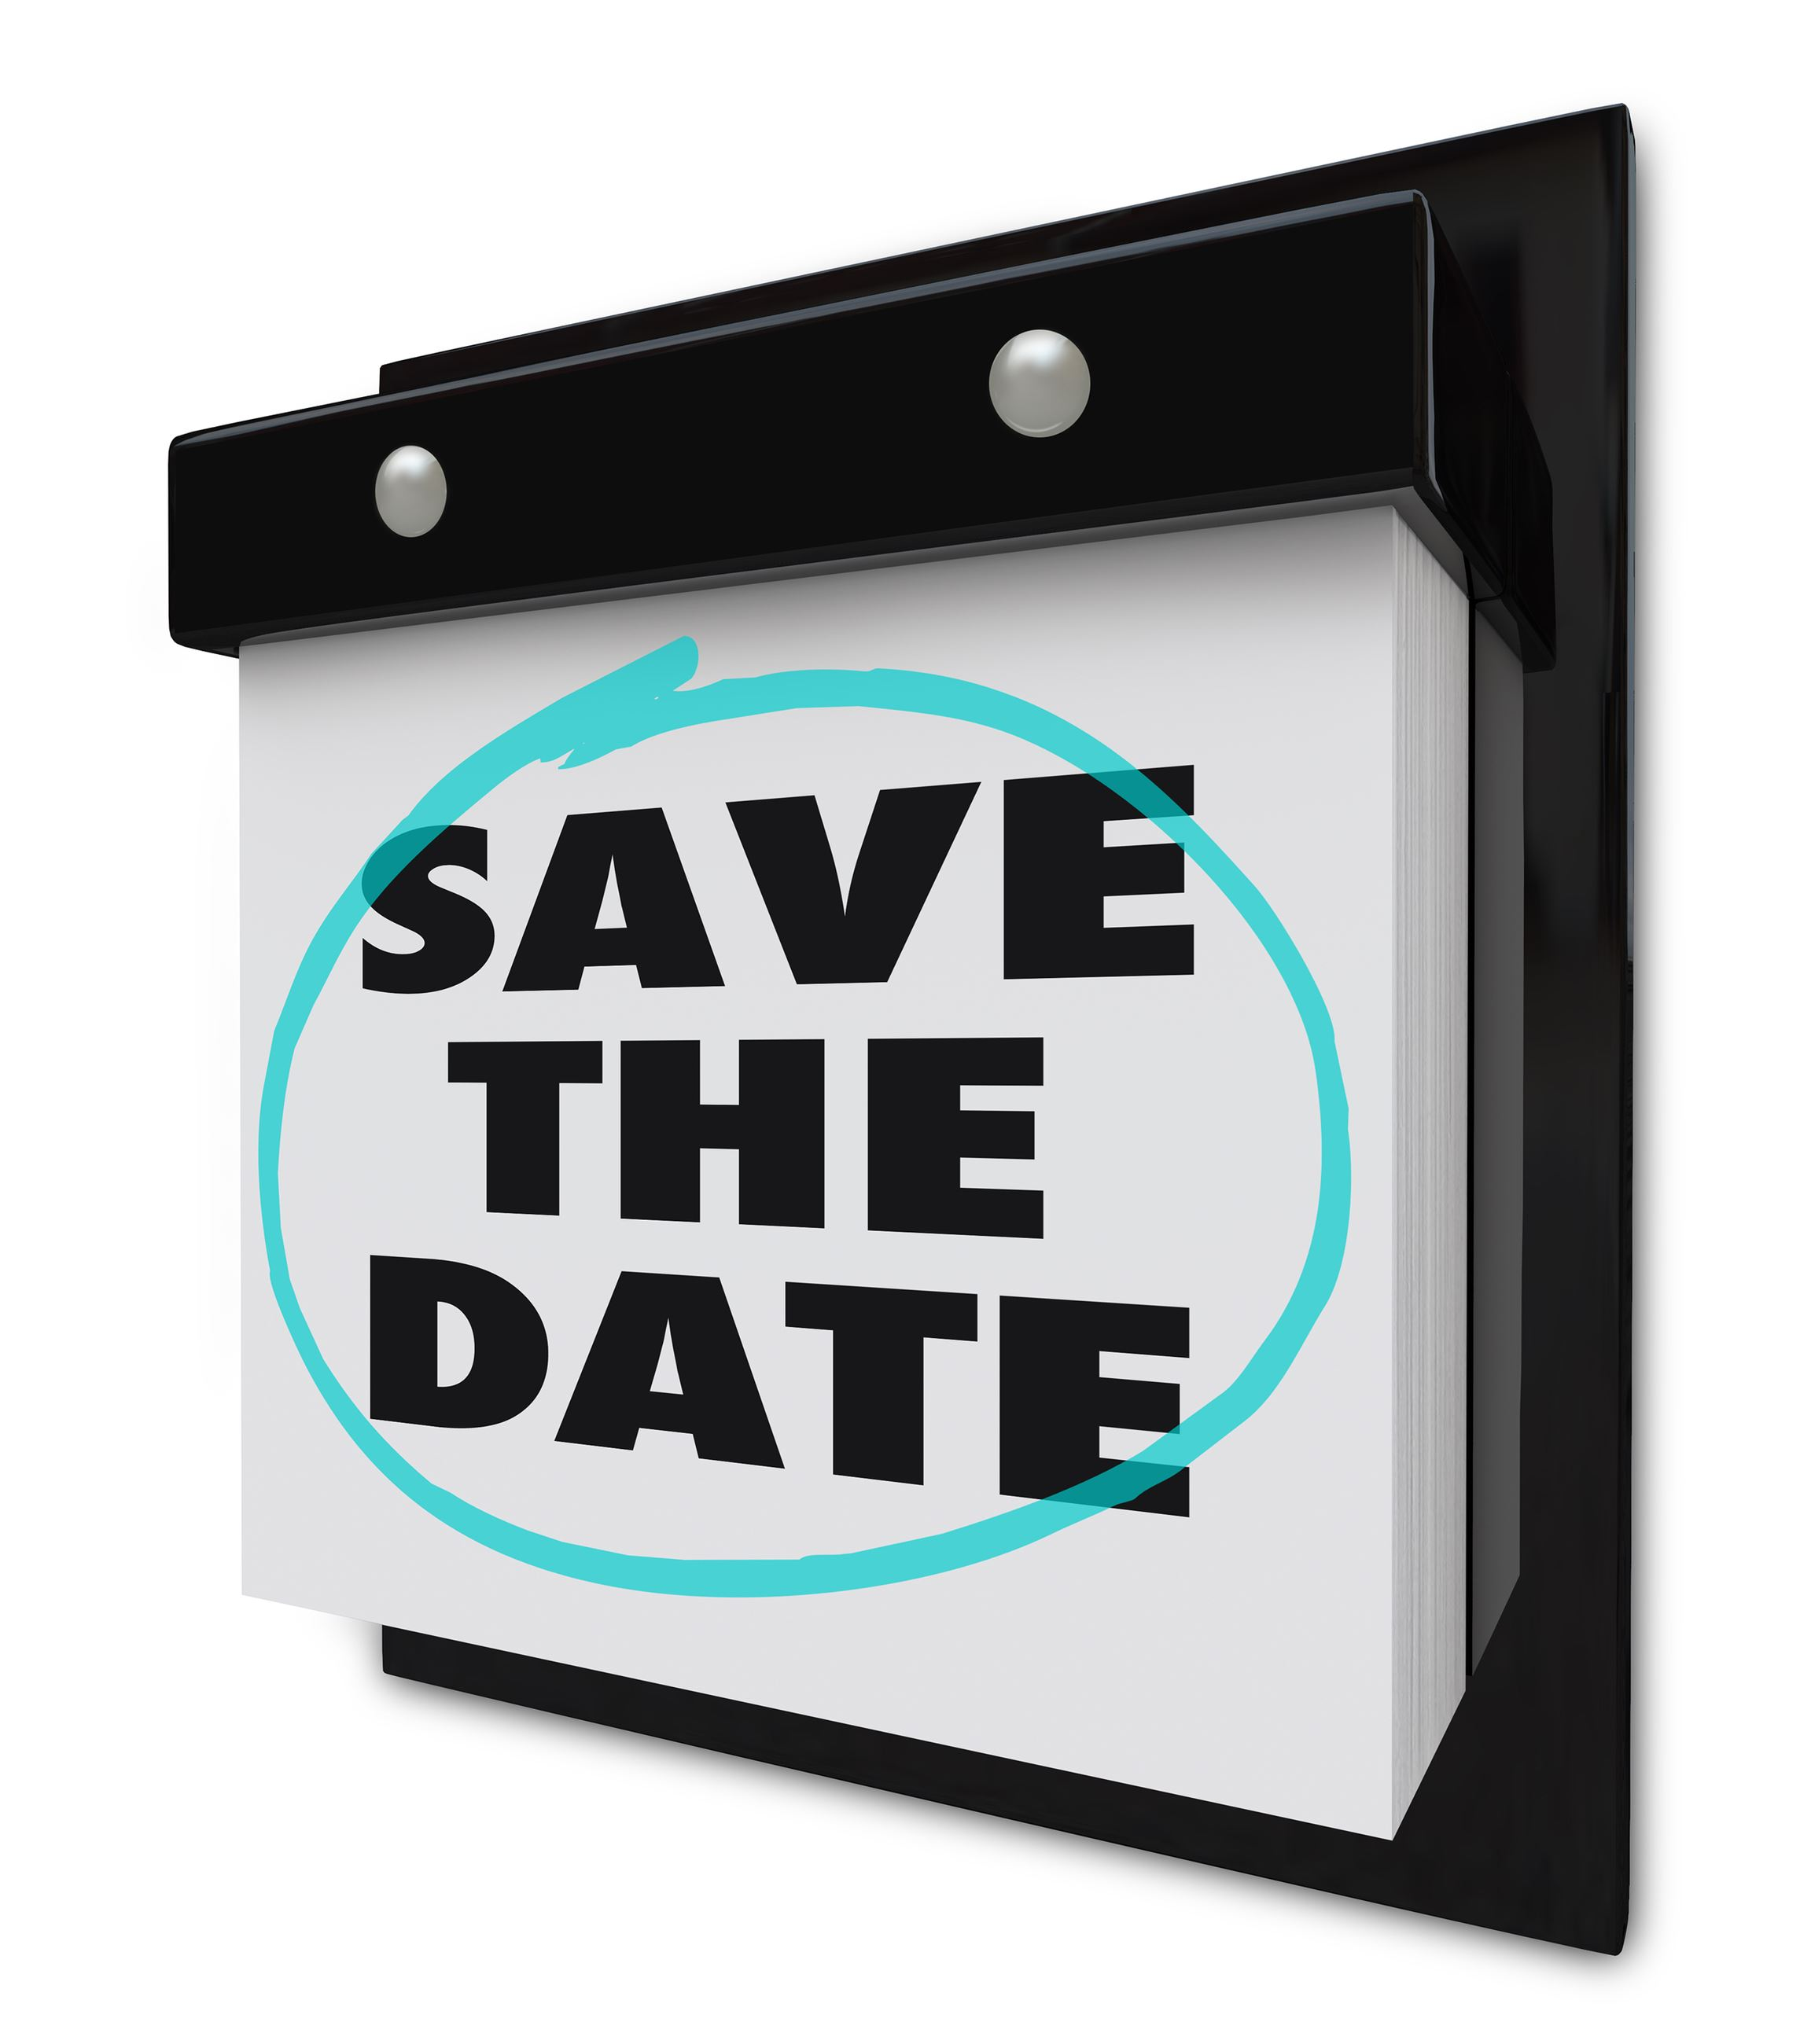 Save the Date (JPG)